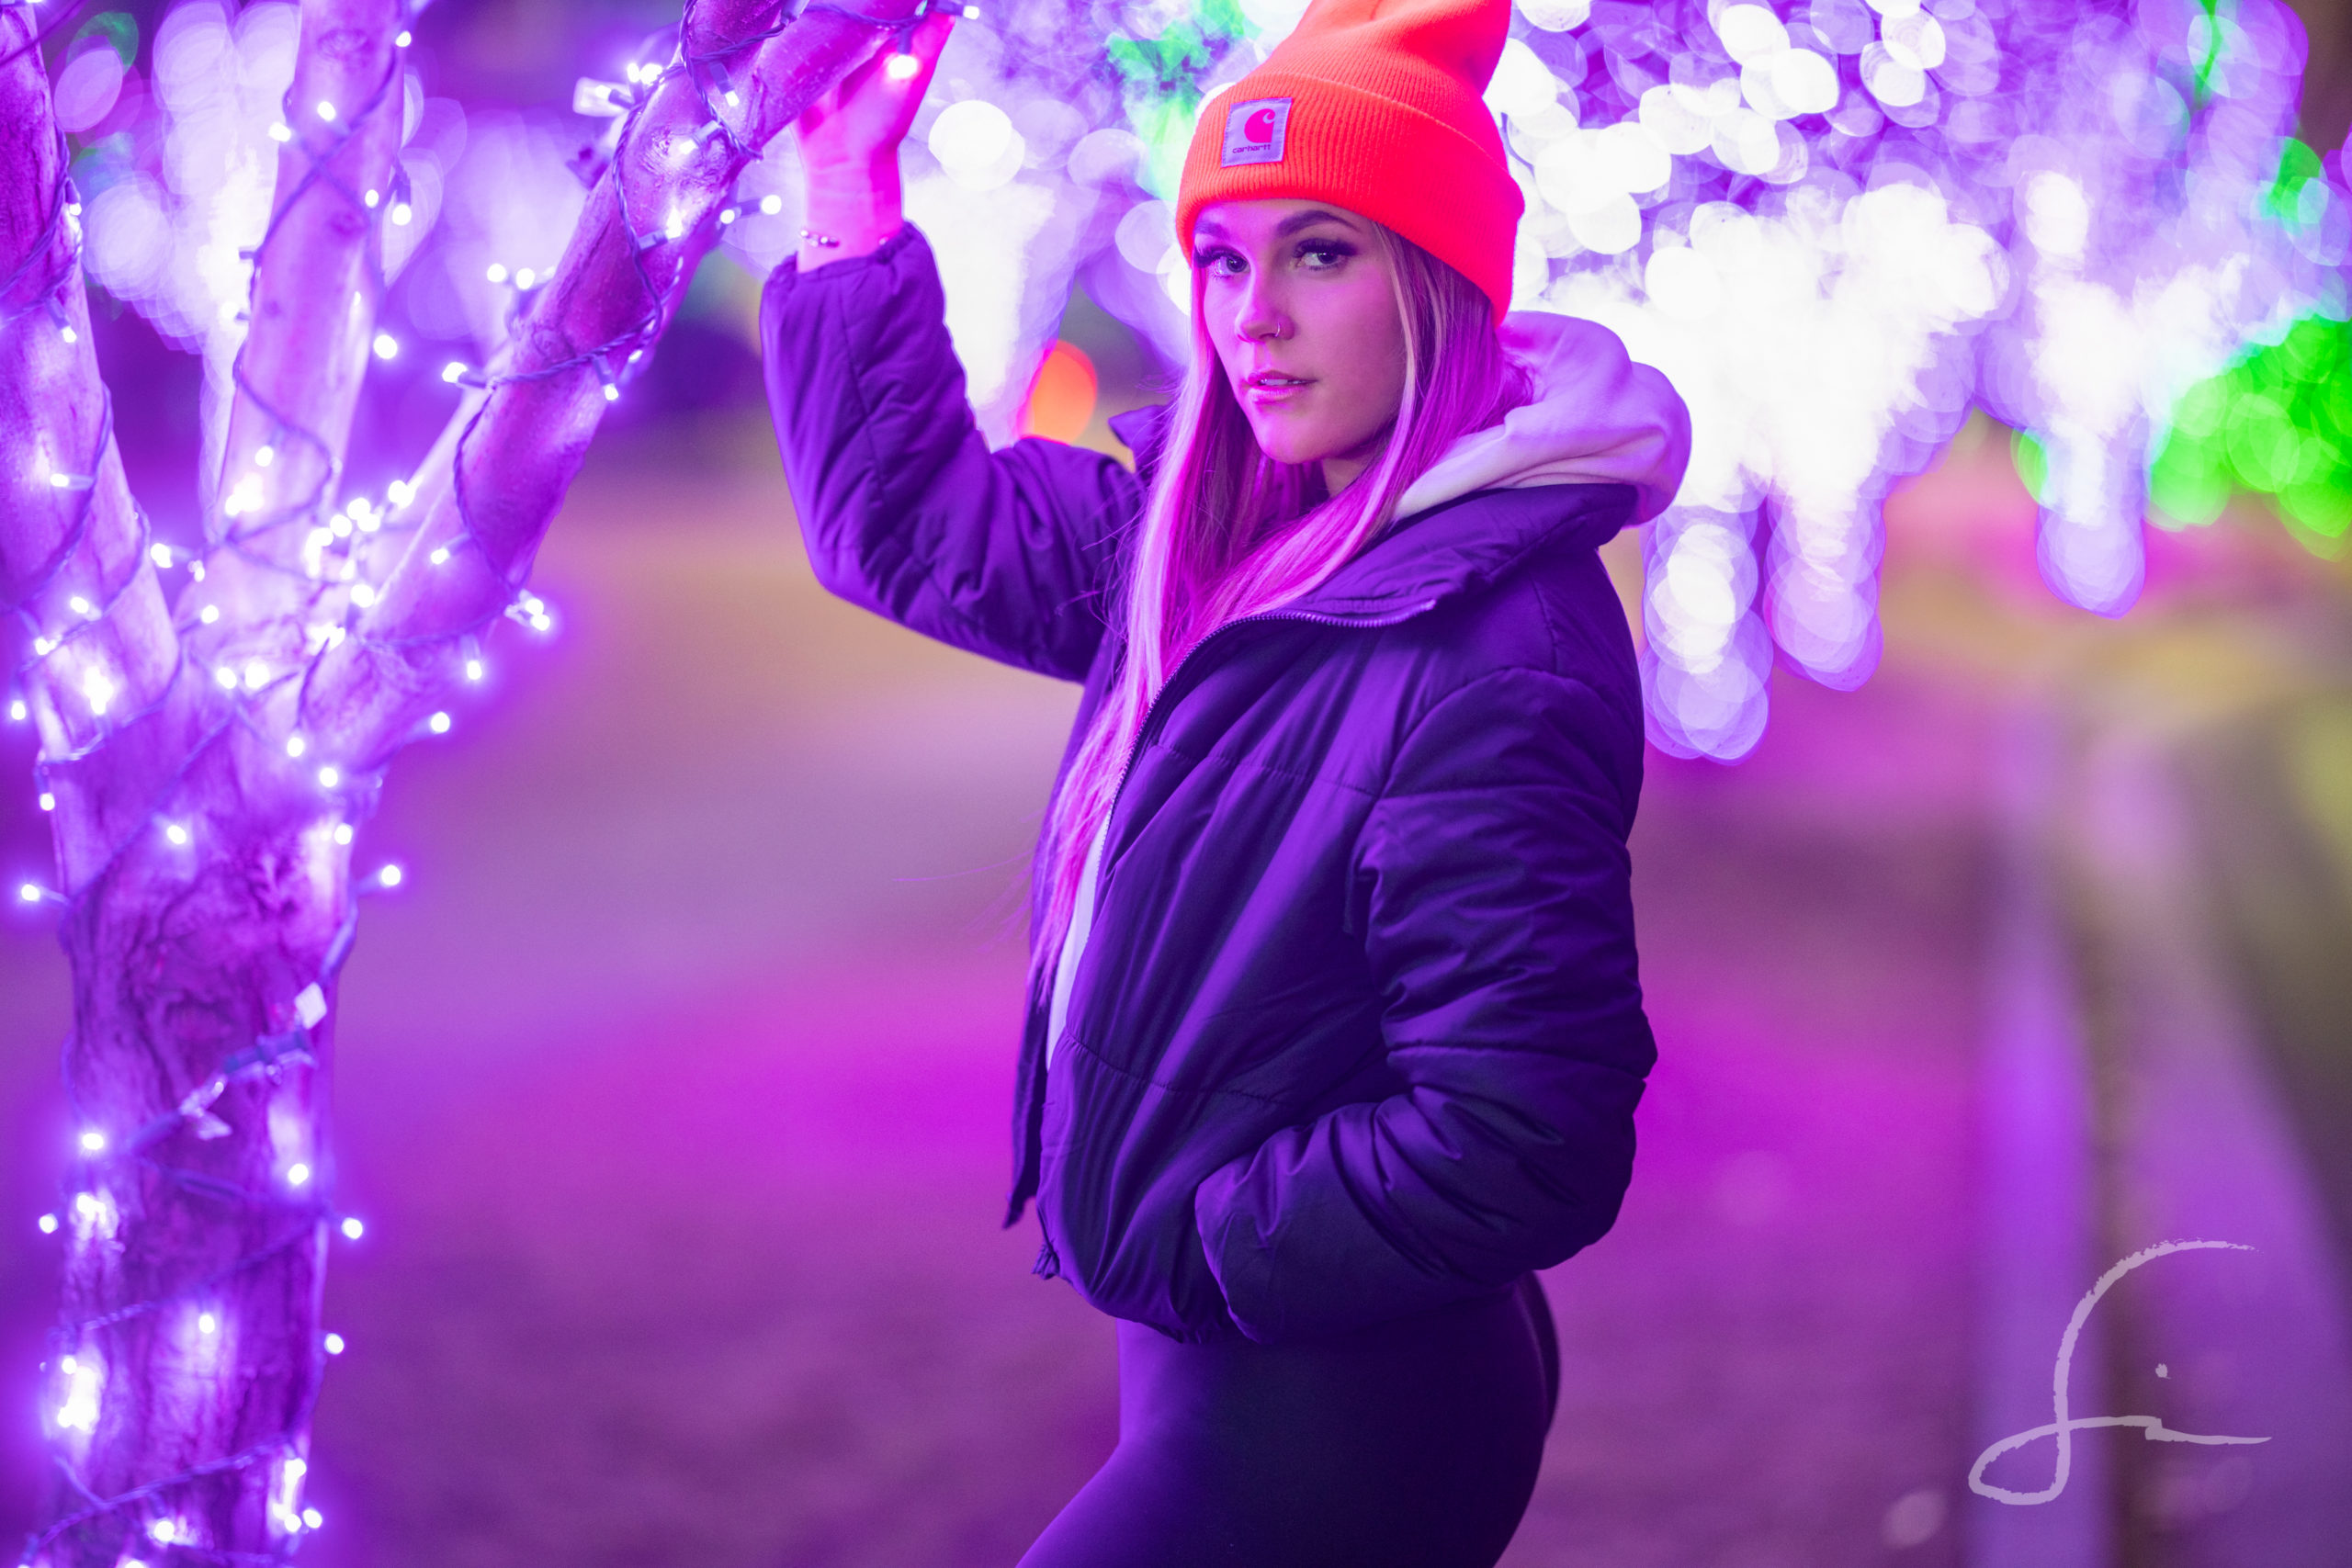 High School Senior in a grove of lighted Christmas Trees